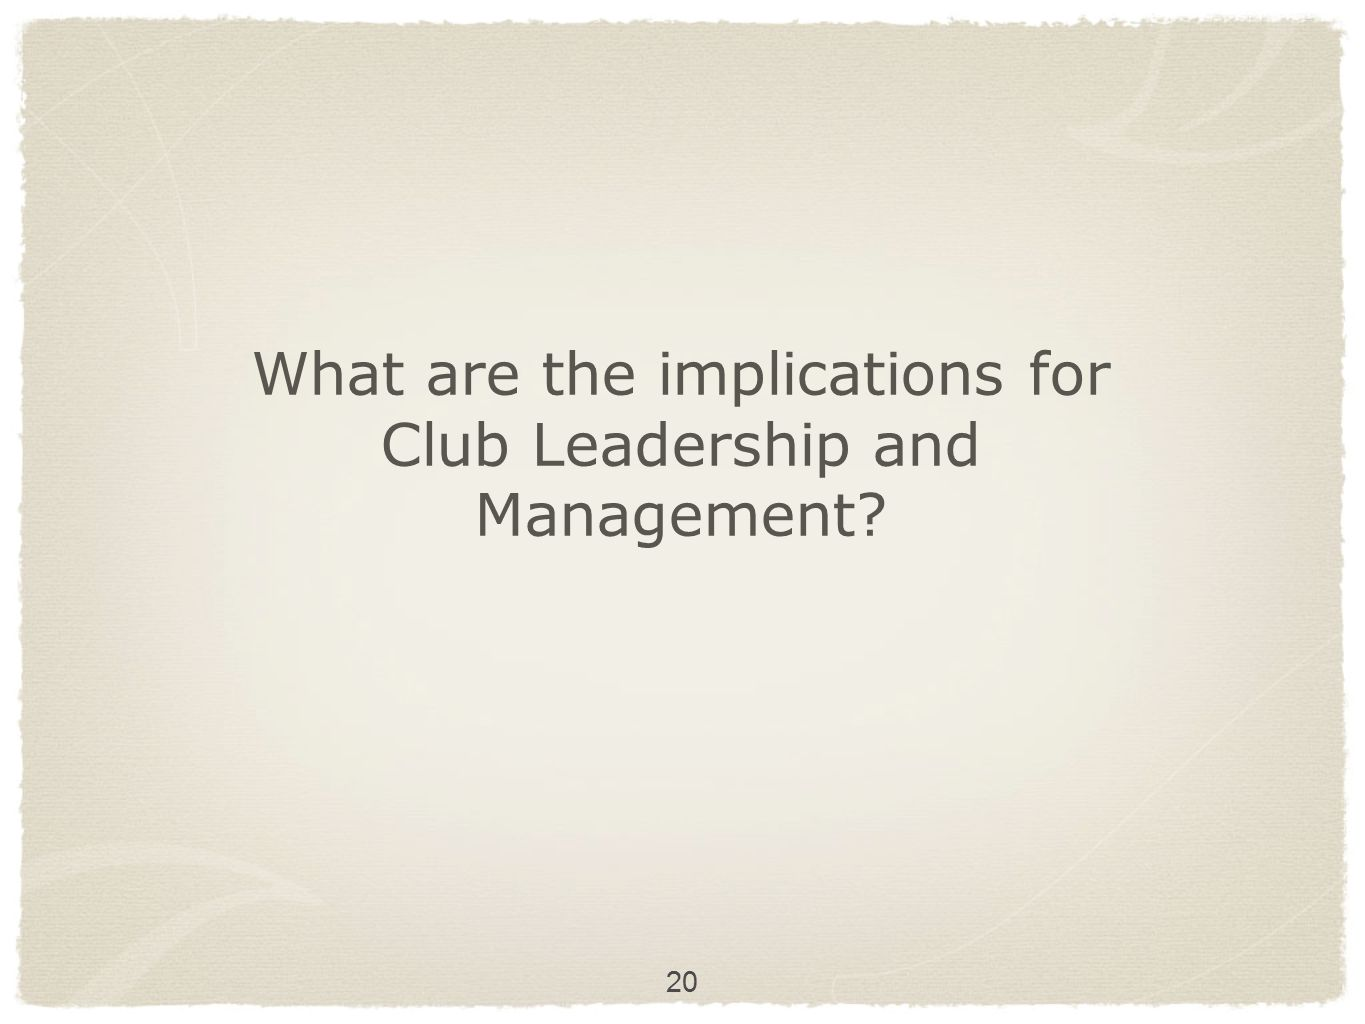 What are the implications for Club Leadership and Management